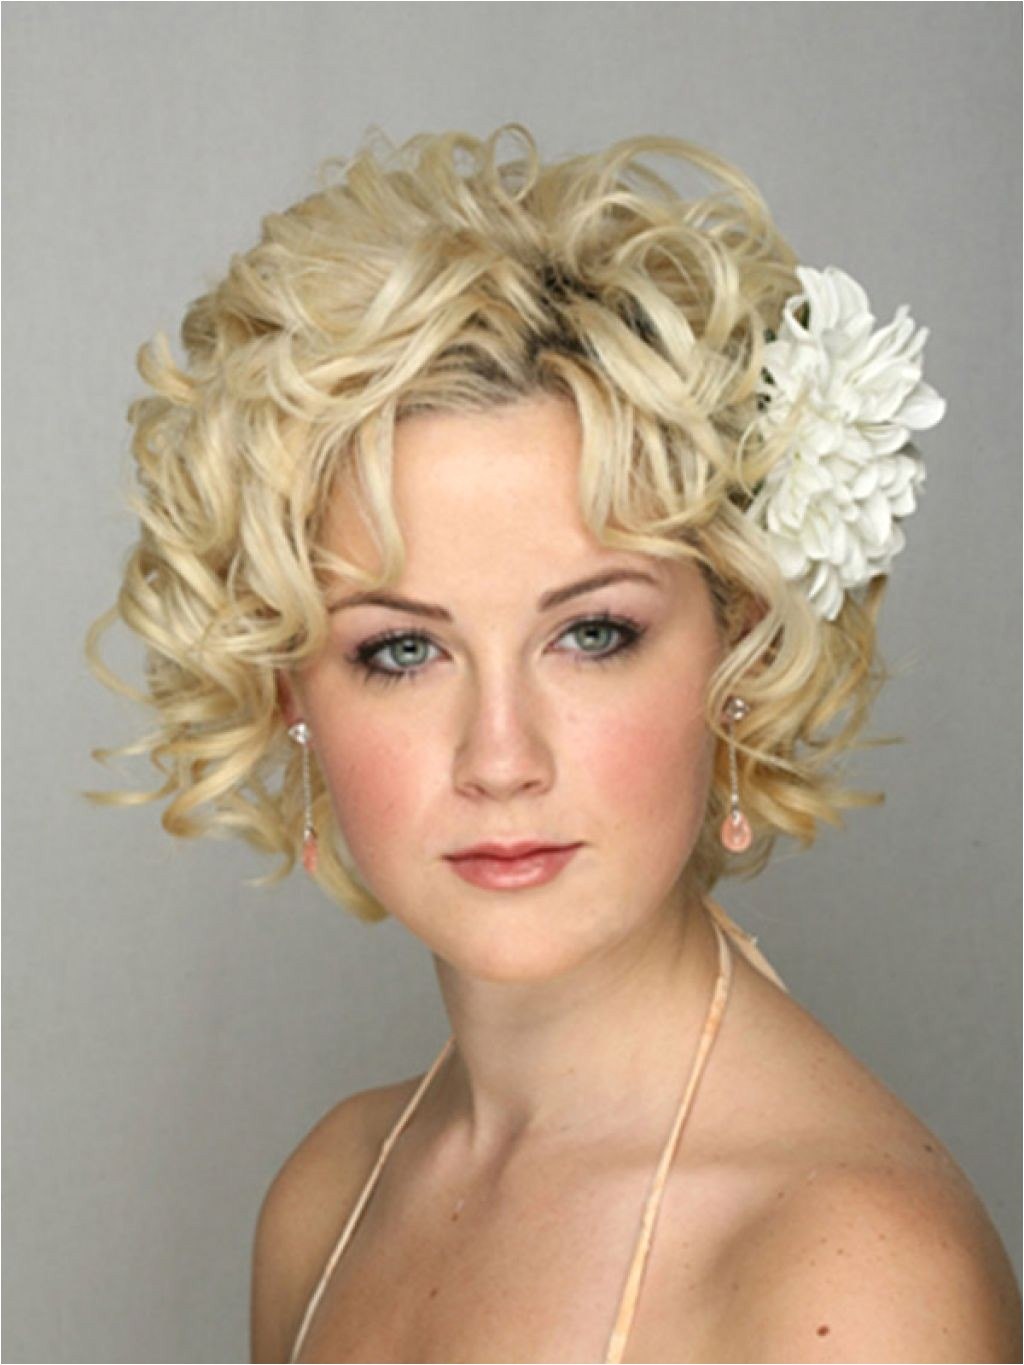 Hairstyles for A Wedding Guest with Medium Hair Wedding Guest Hairstyles for Medium Length Hair